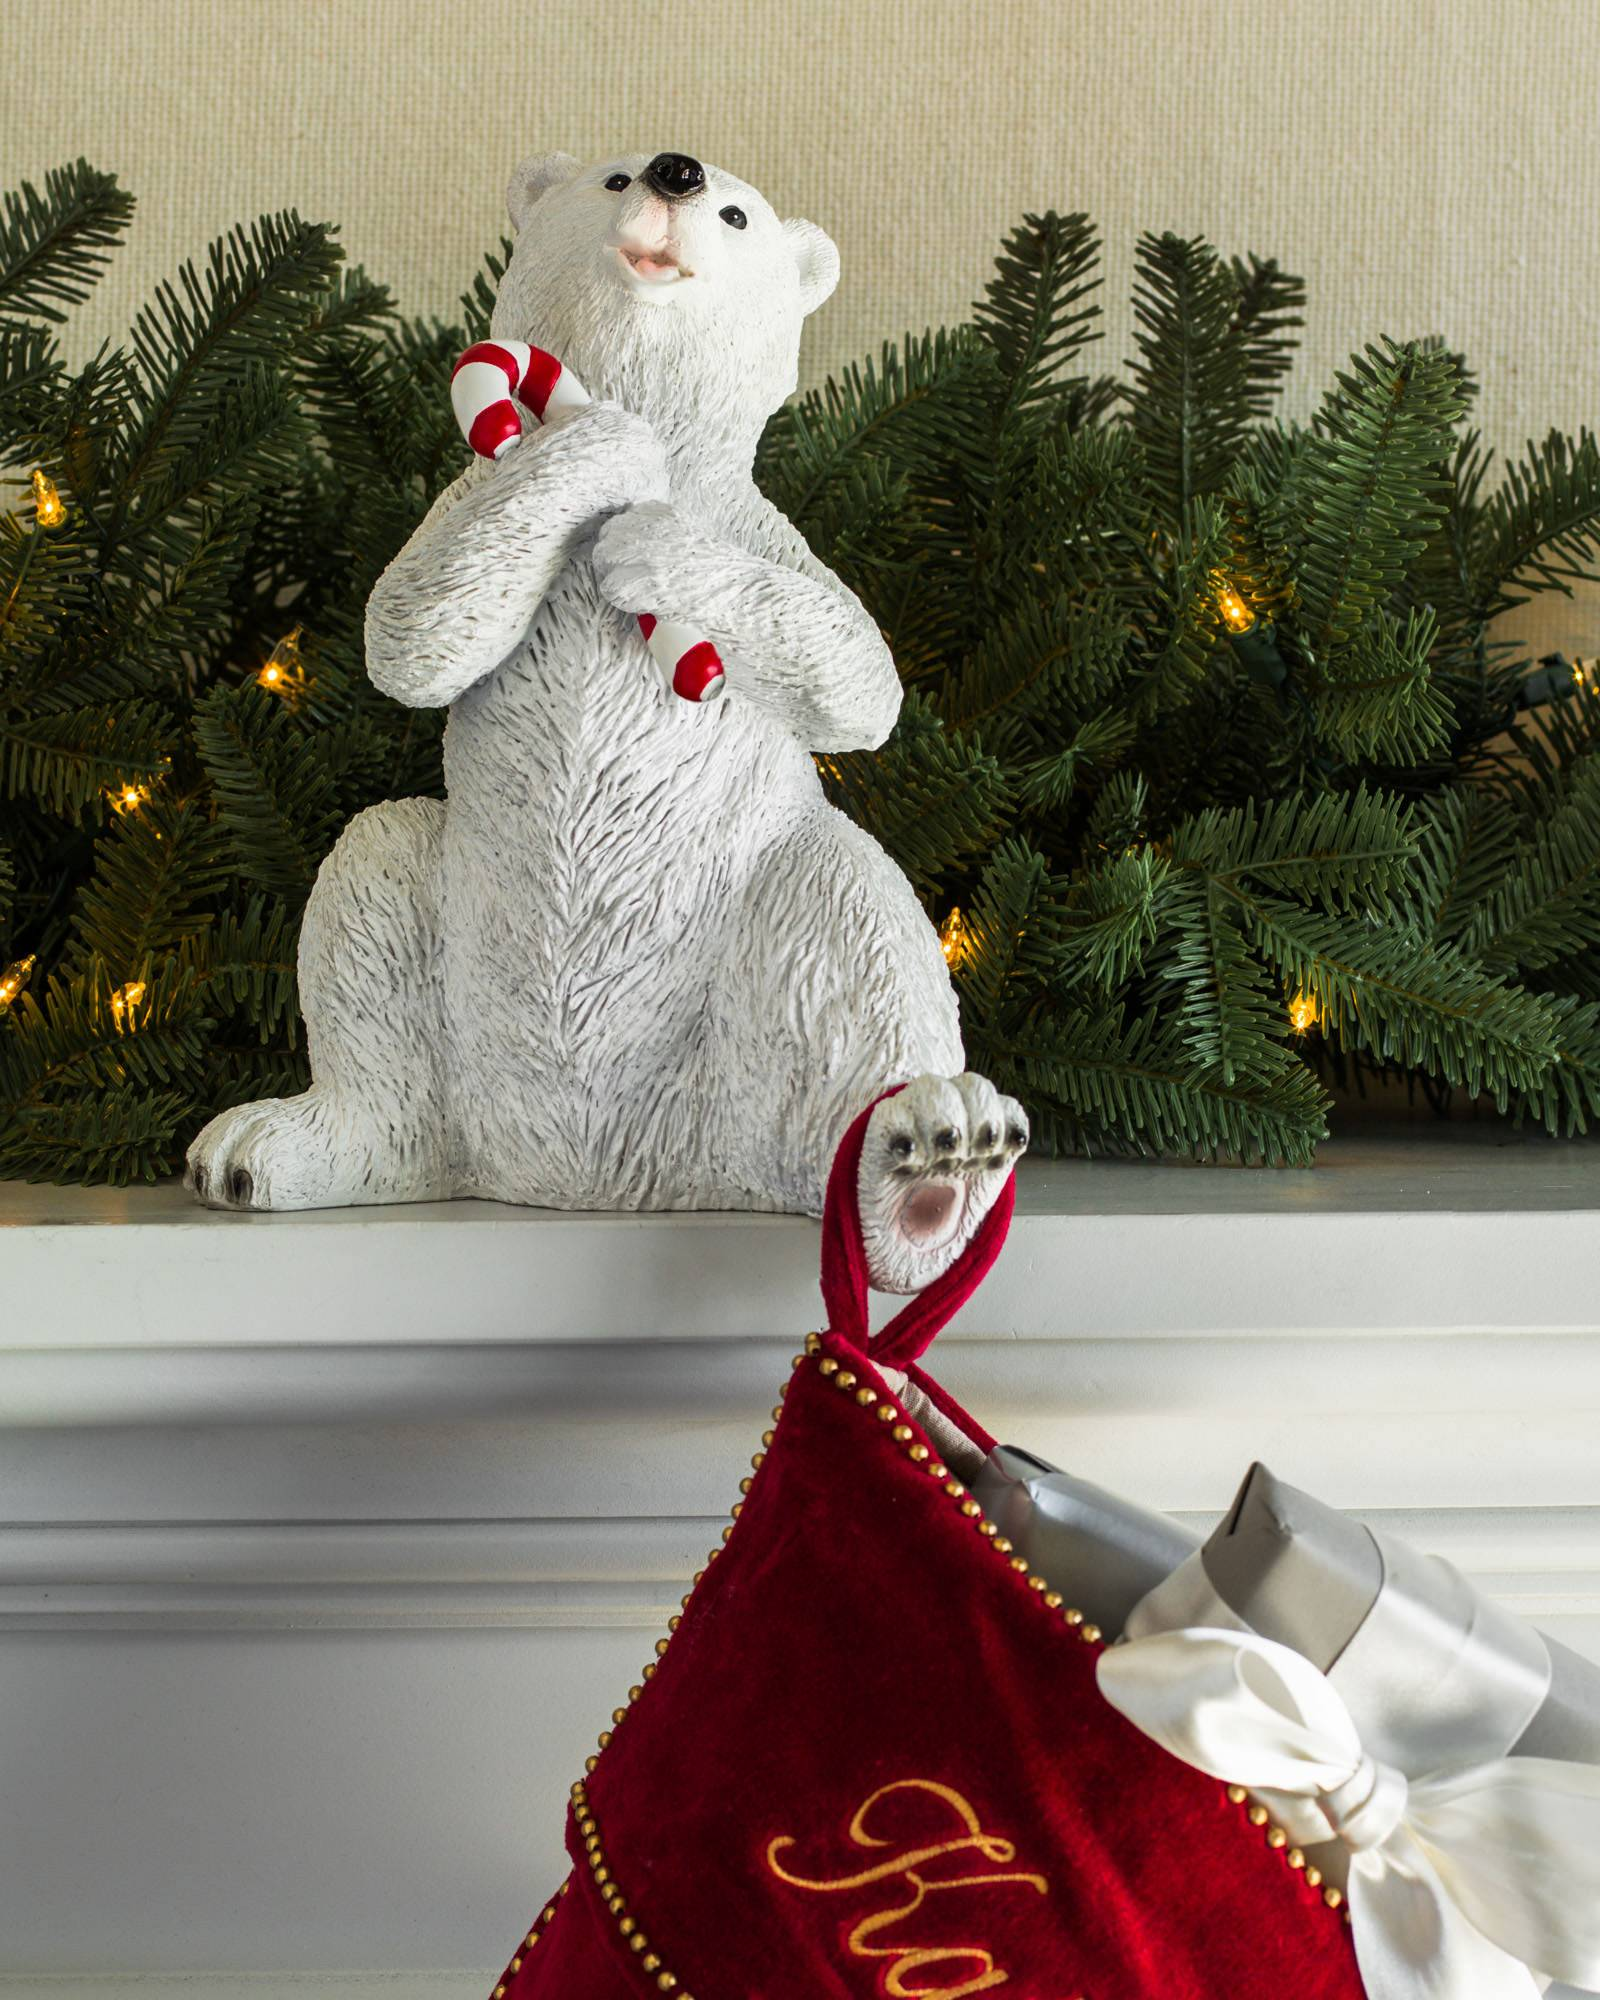 polar bear family stocking holder alt polar bear family stocking holder alt - Polar Bear Christmas Decorations